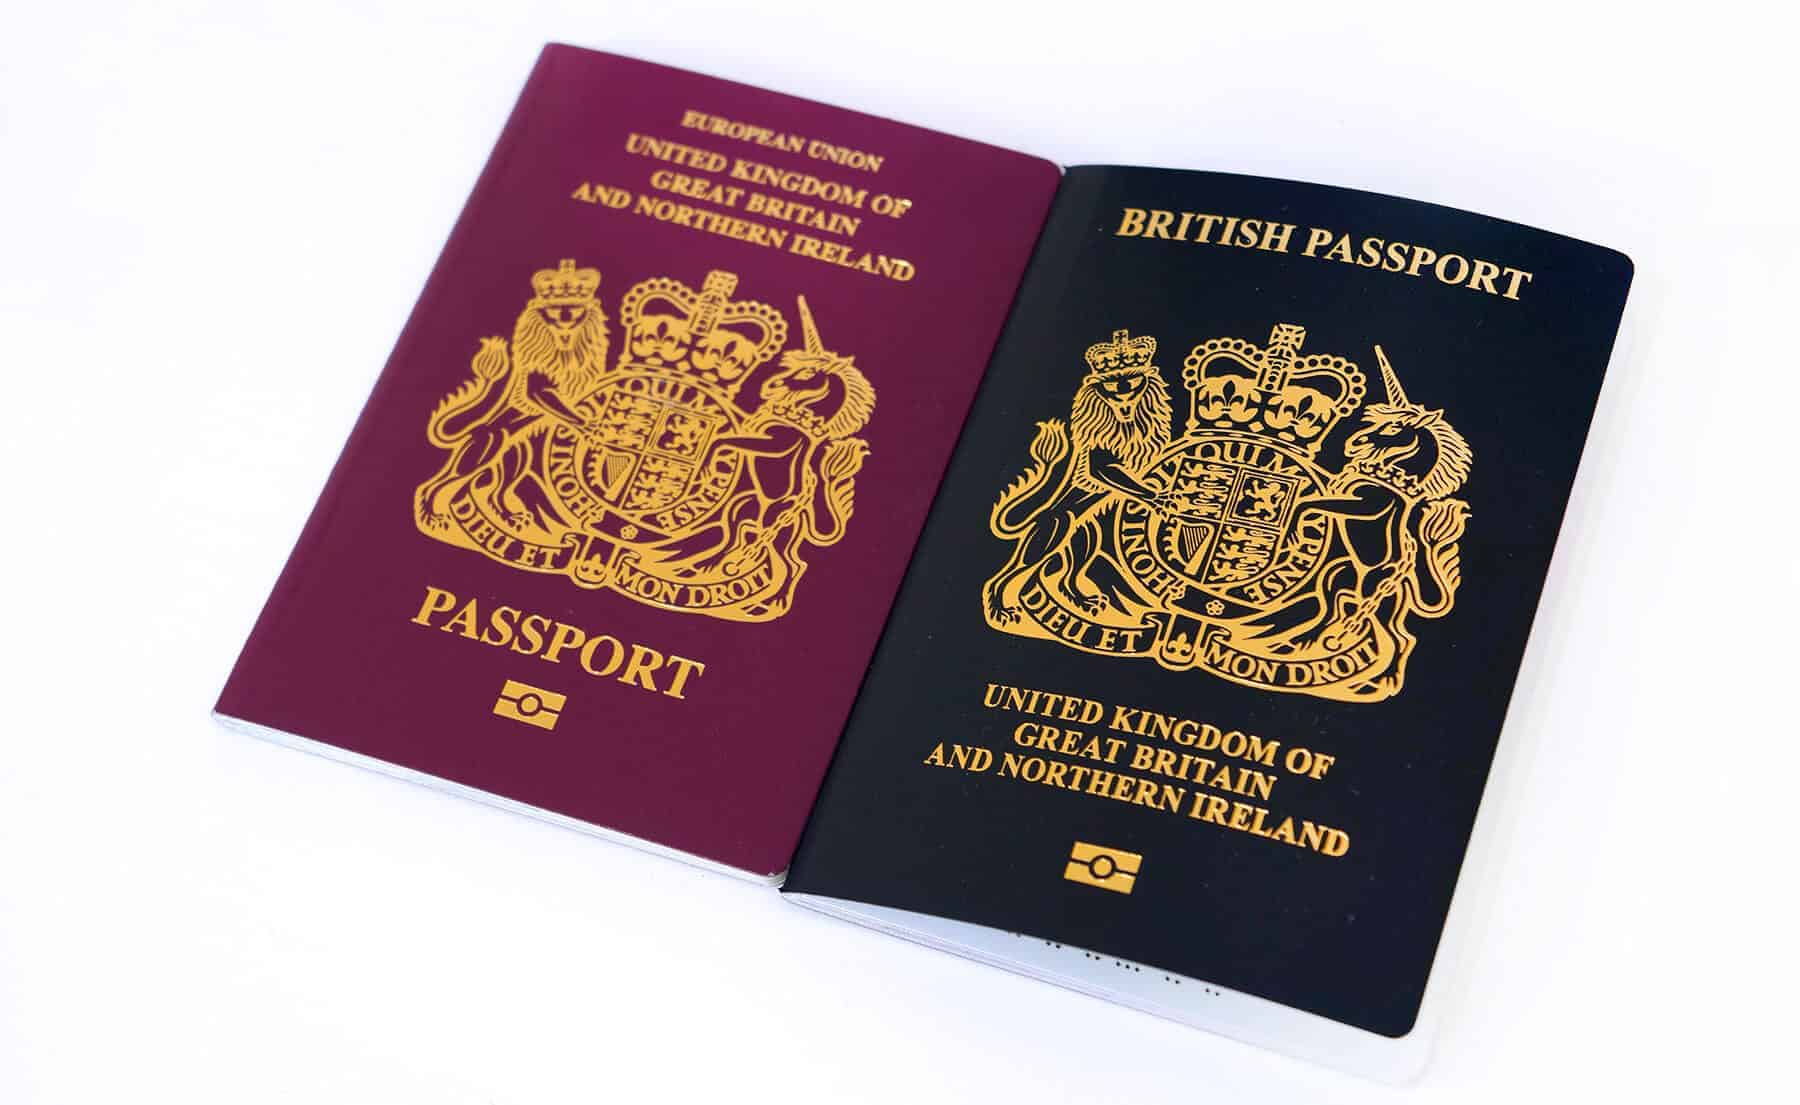 Changes to passport in 2021